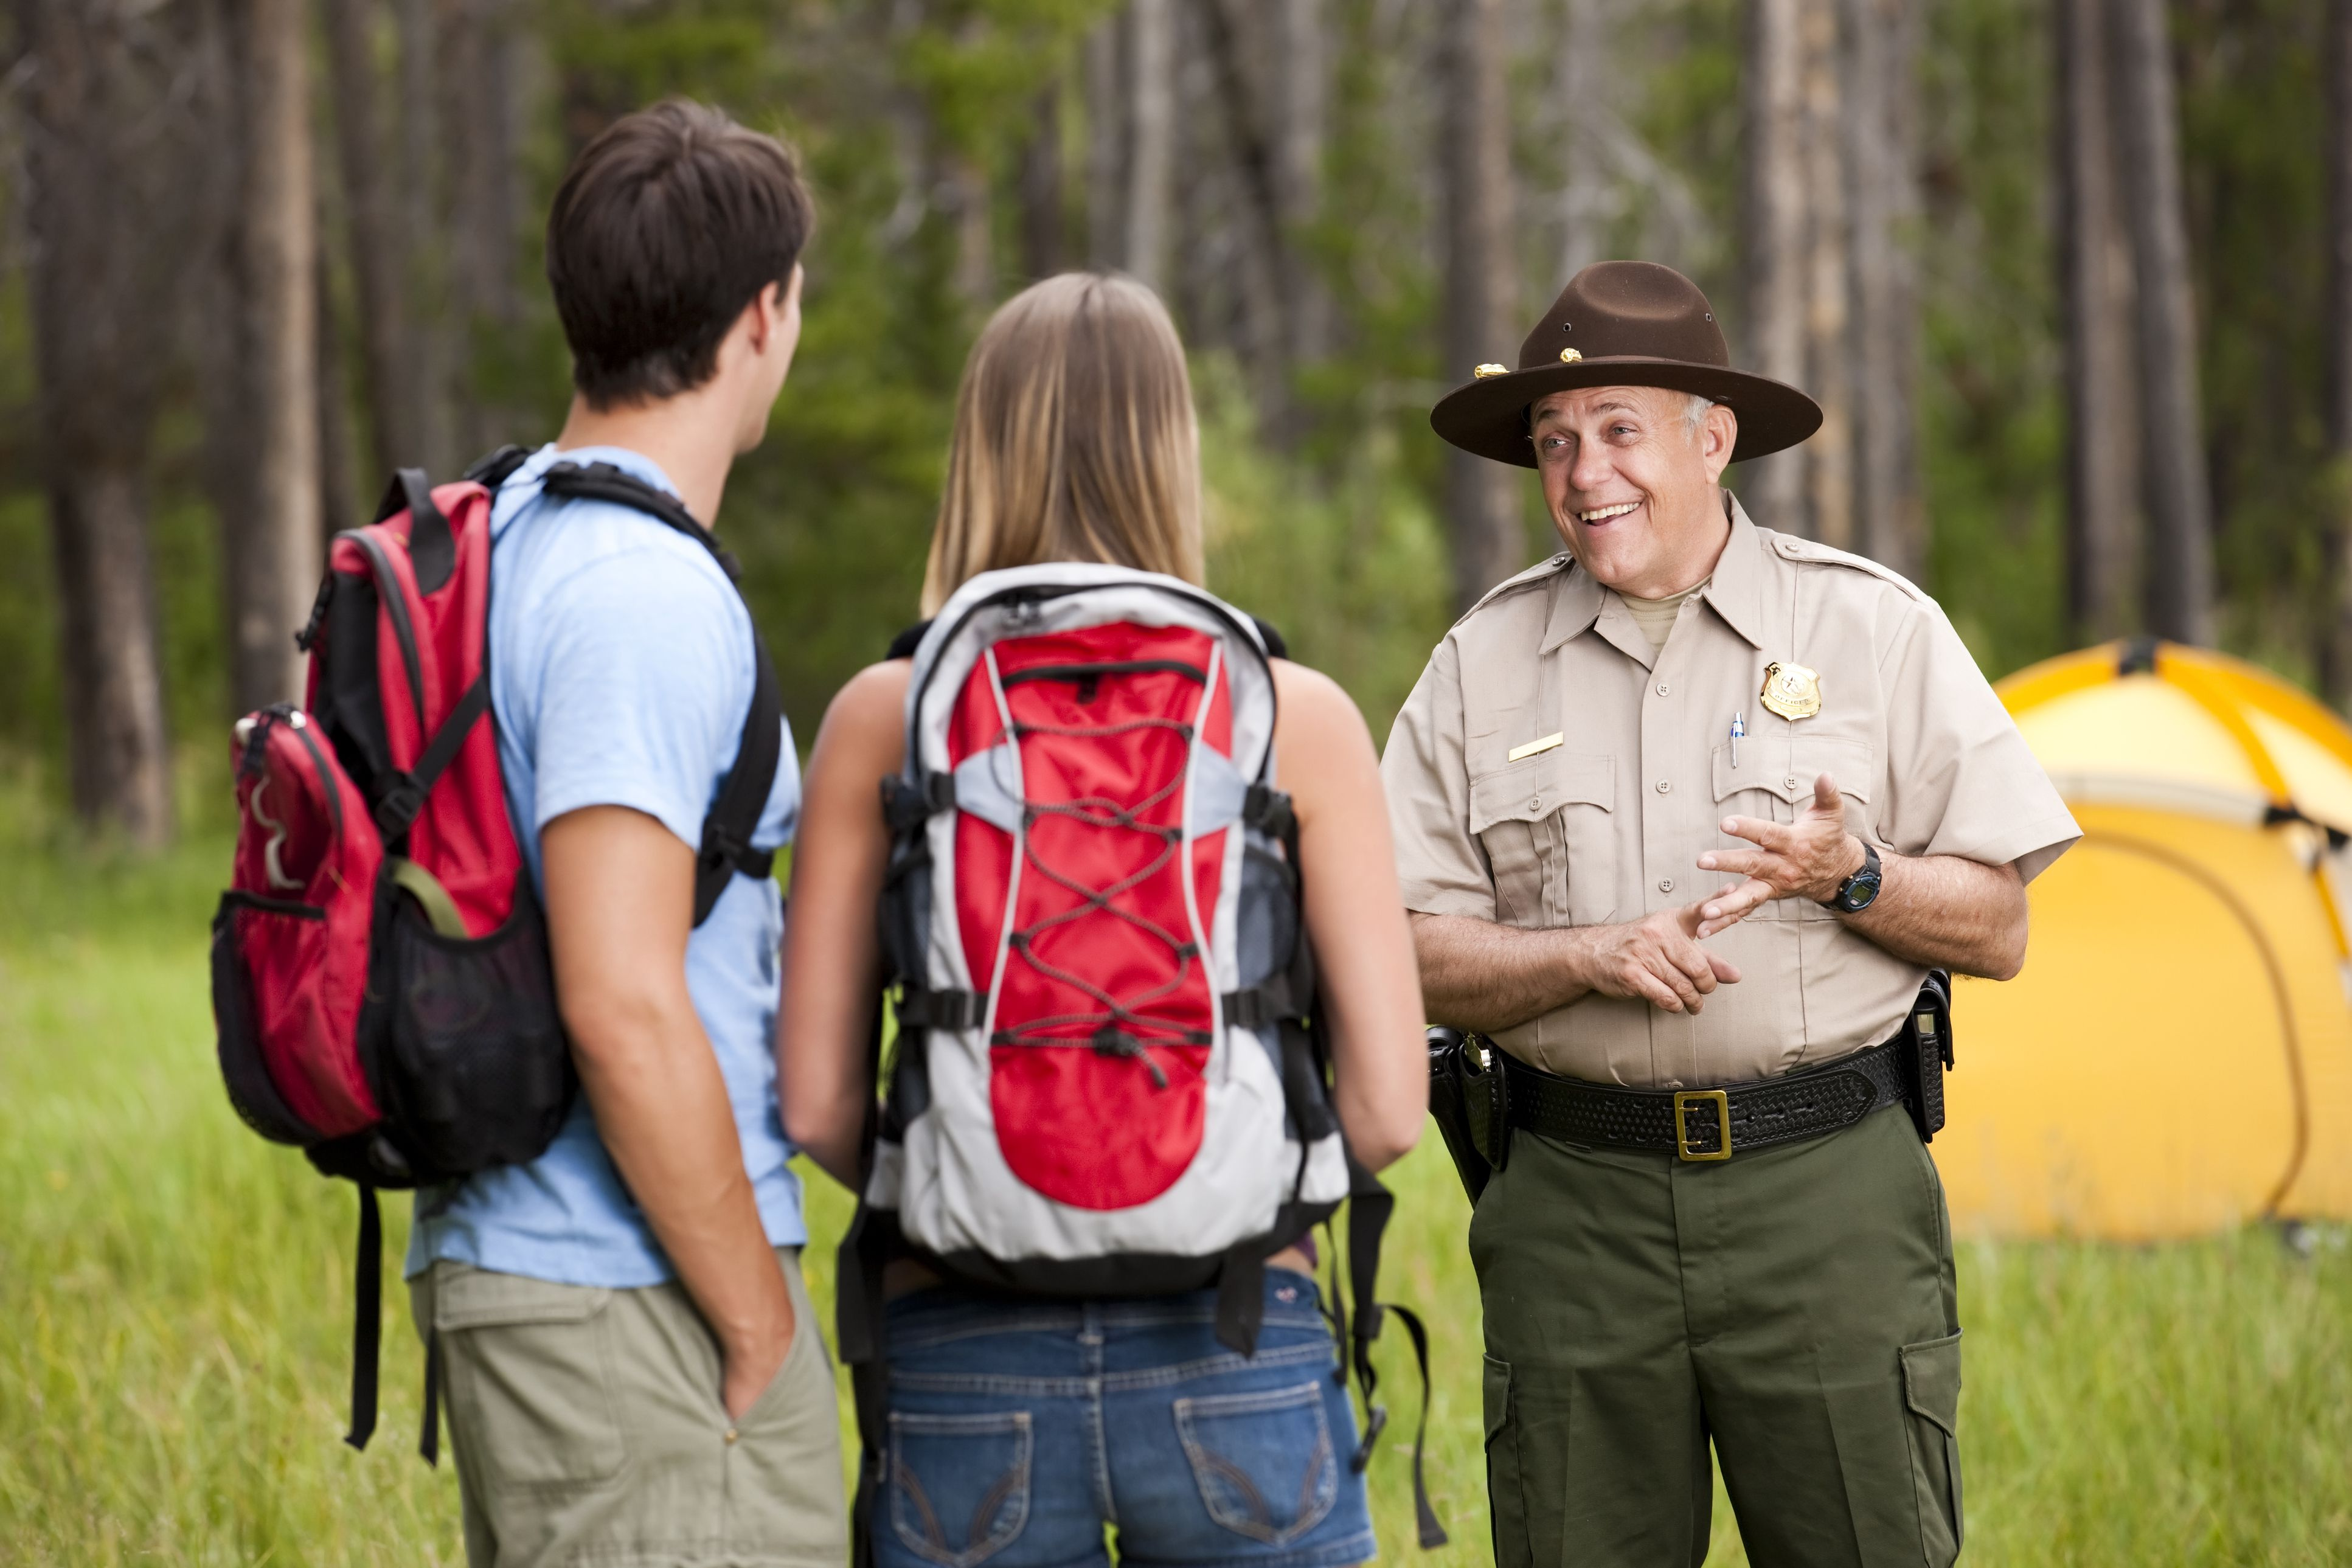 A national park service ranger talks to campers.